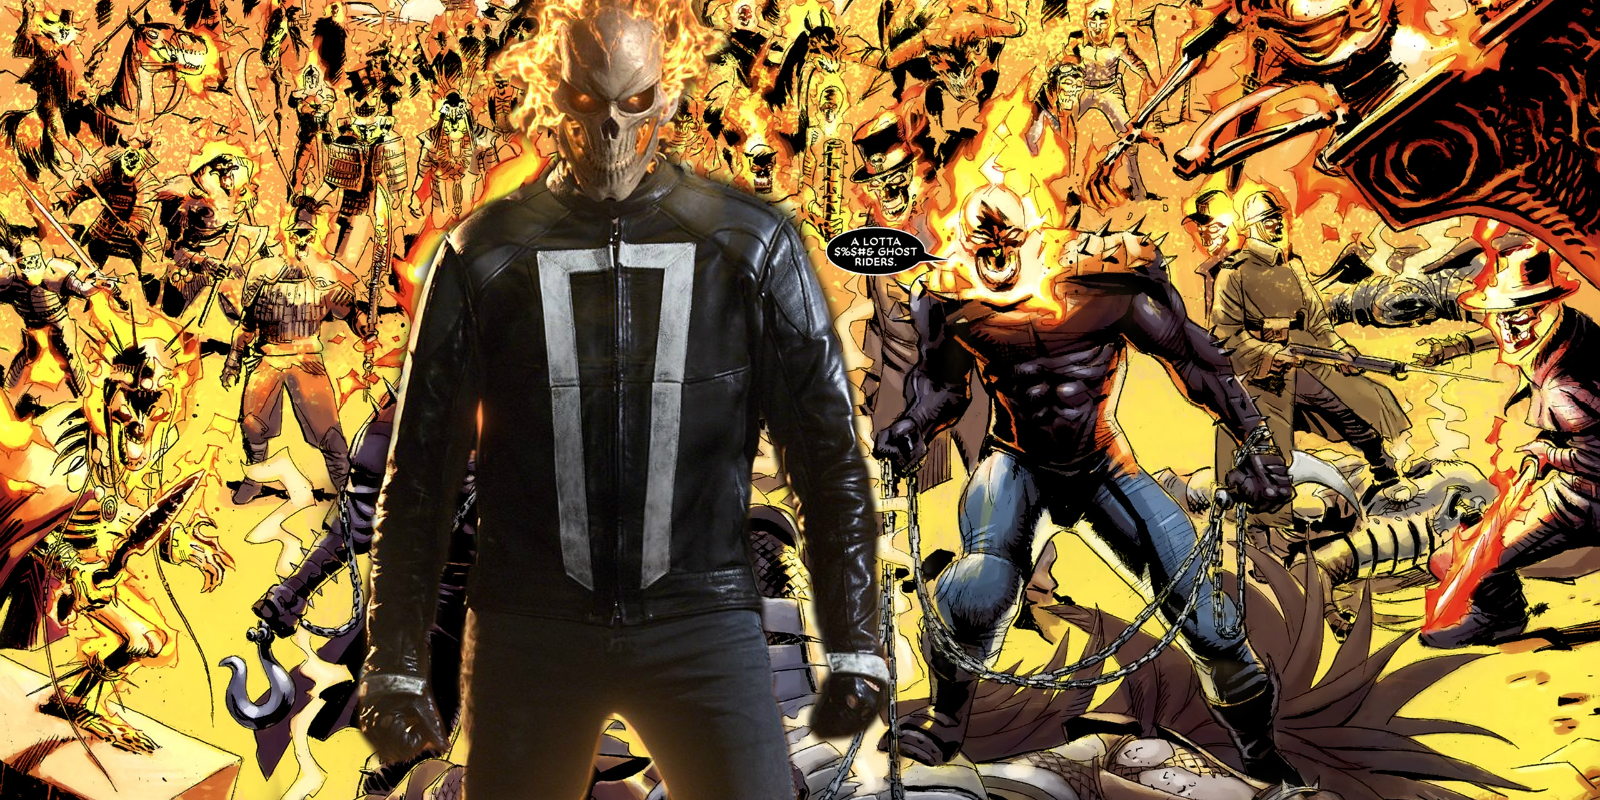 Agents of S.H.I.E.L.D. May Have Just Introduced Johnny Blaze